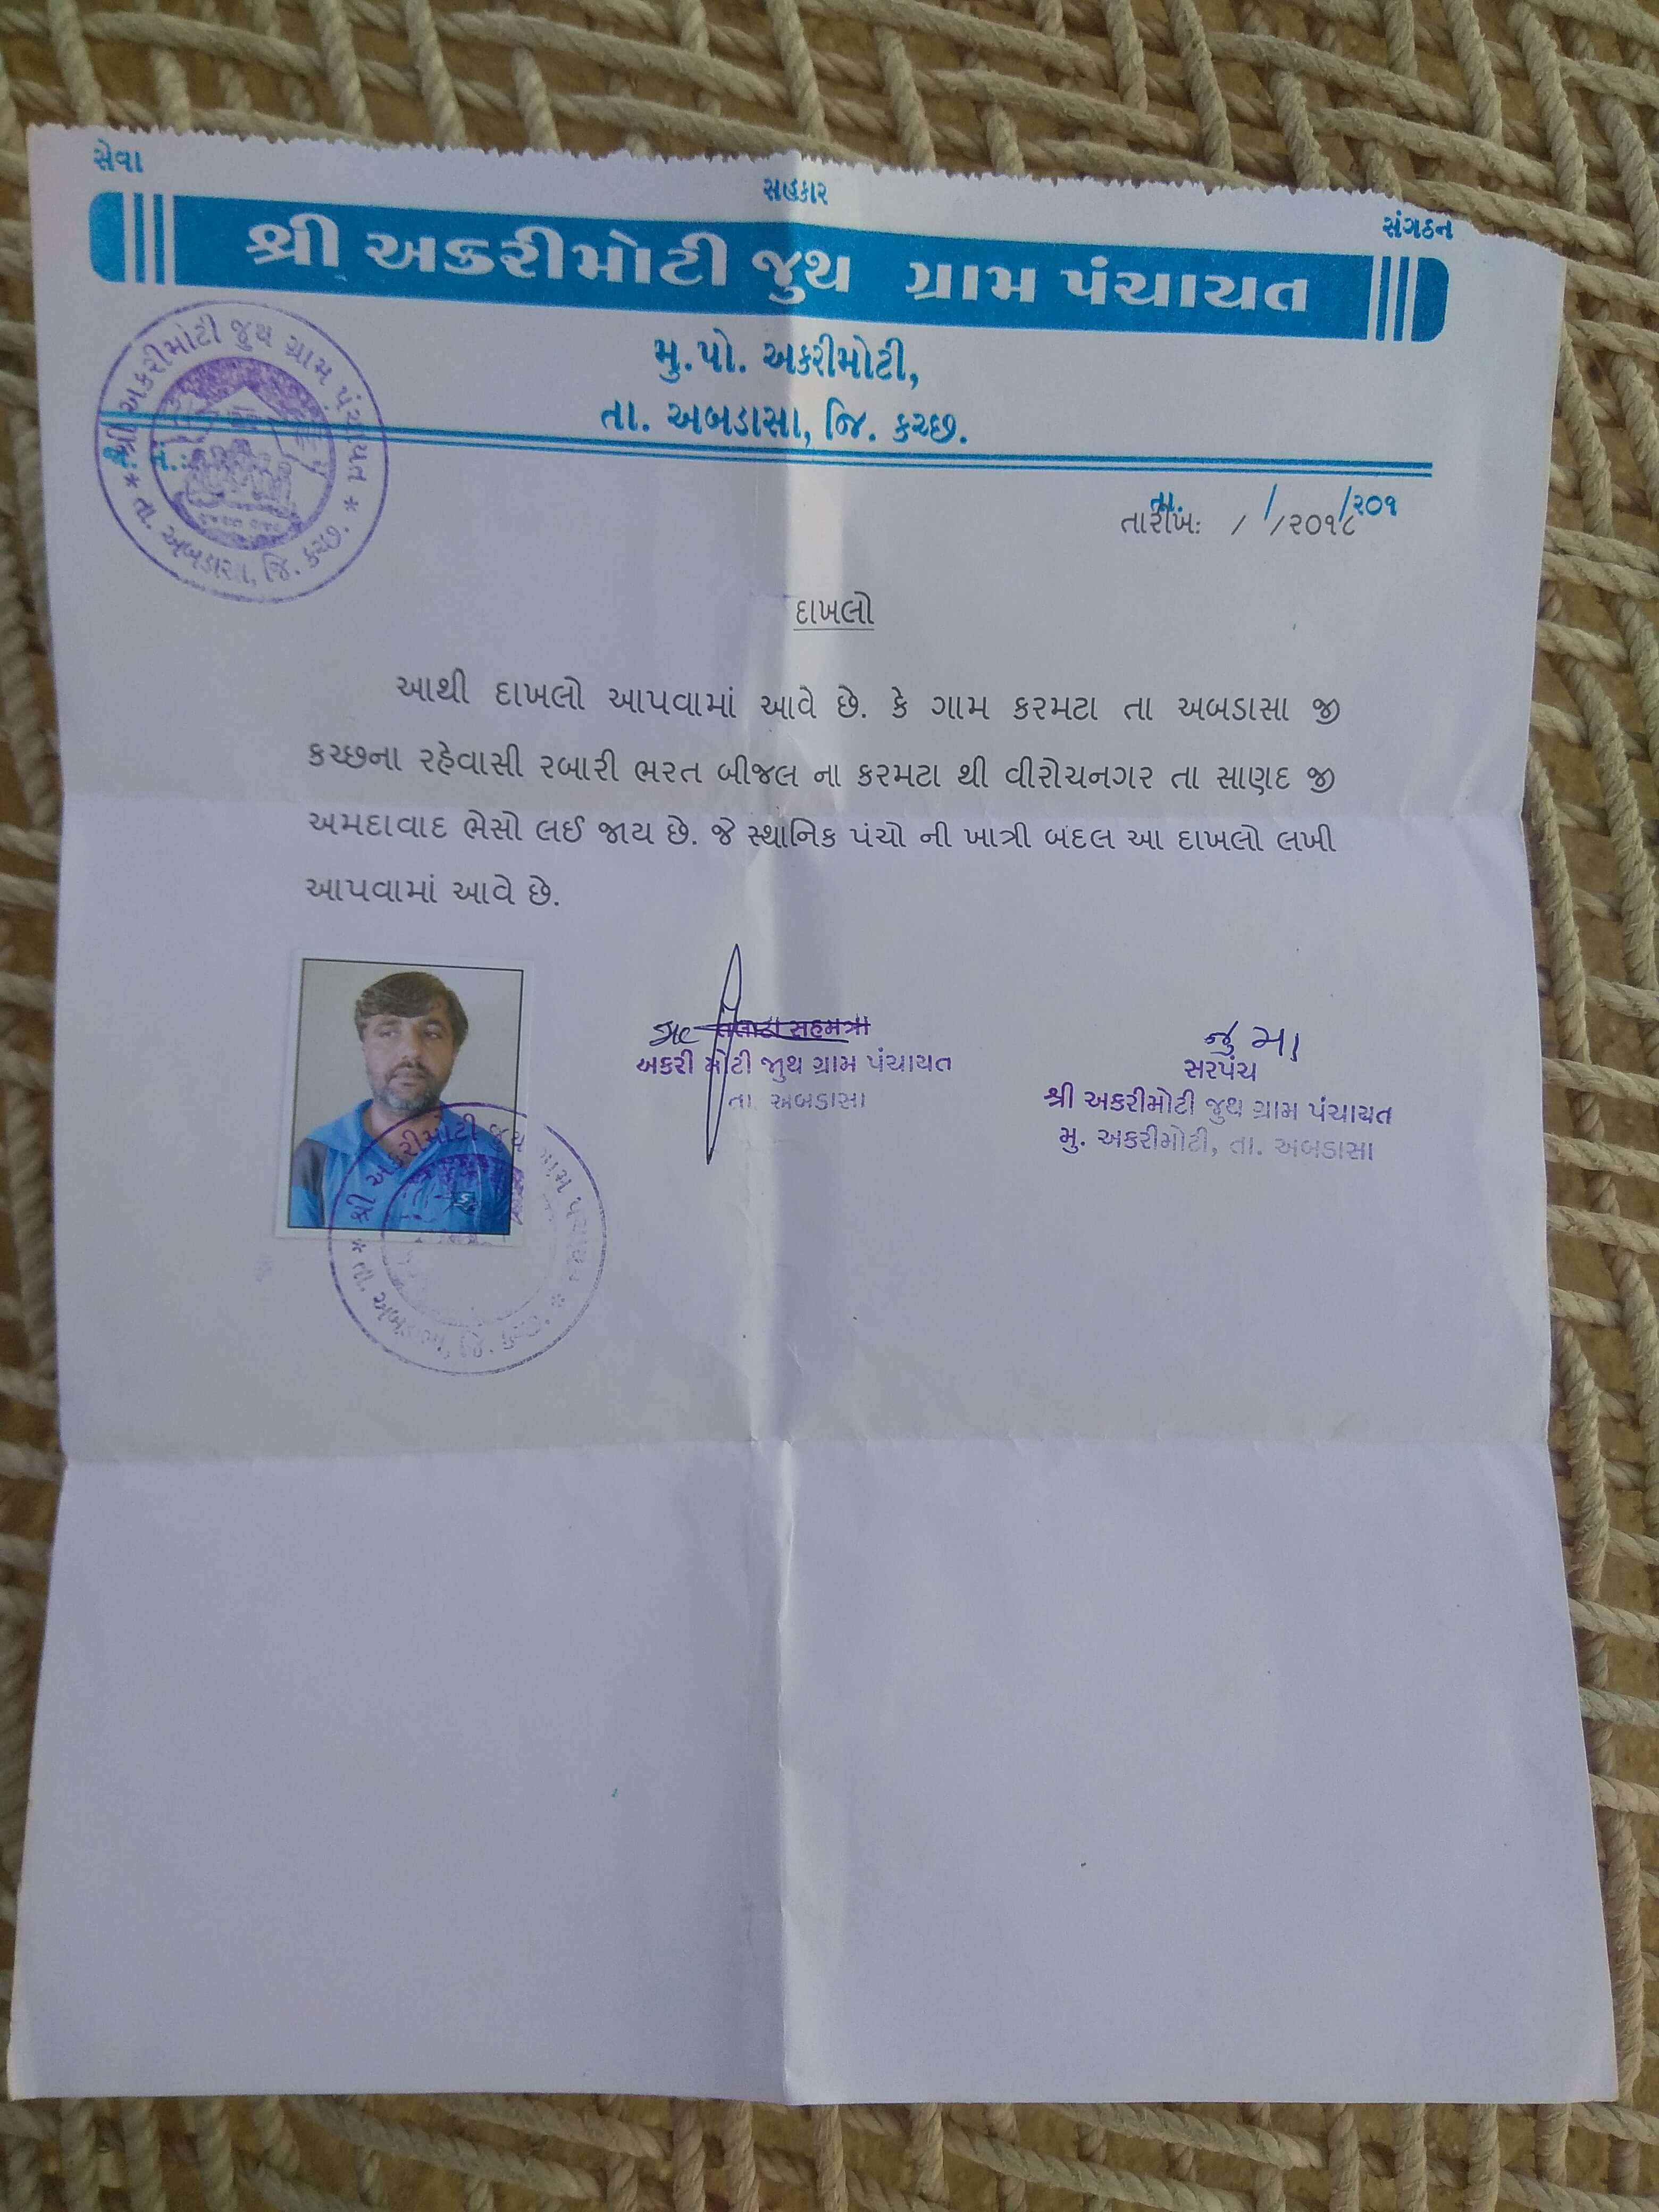 Acknowledgement%20Letter%20provided%20by%20Gram%20Panchayat%20to%20Bharat%20Rabari%20(1)_1.jpeg